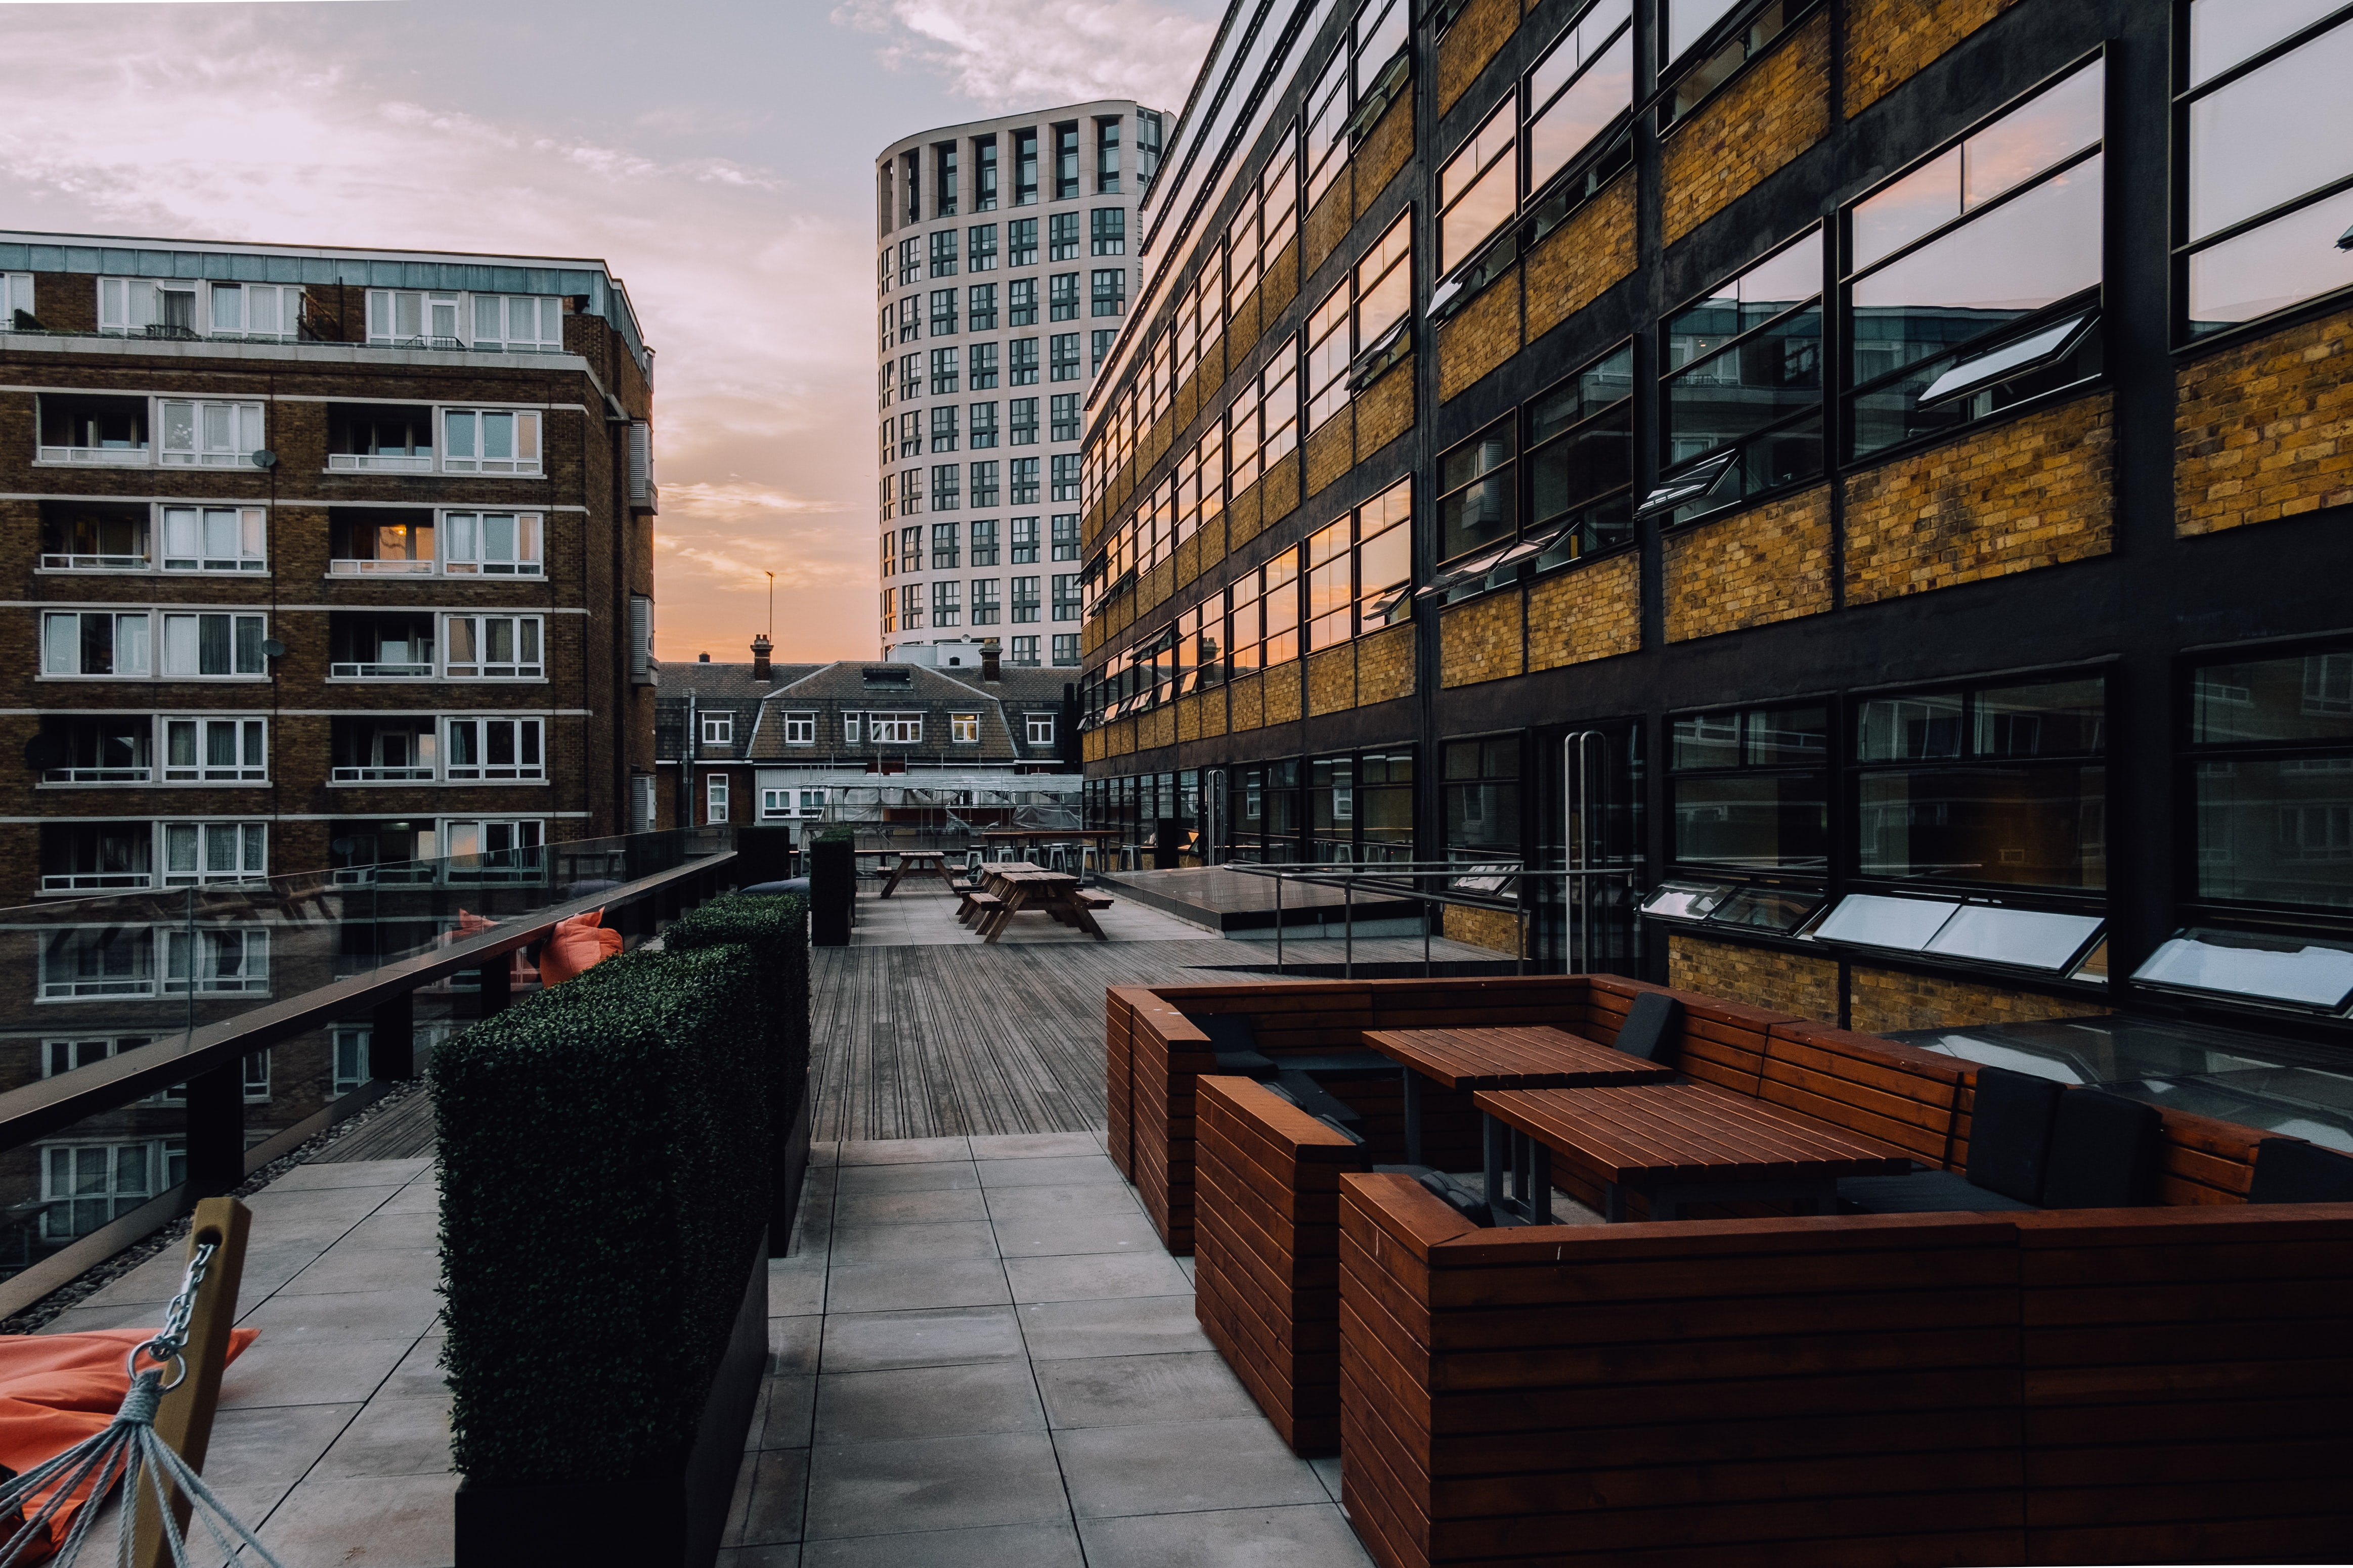 A large patio at an office building in London